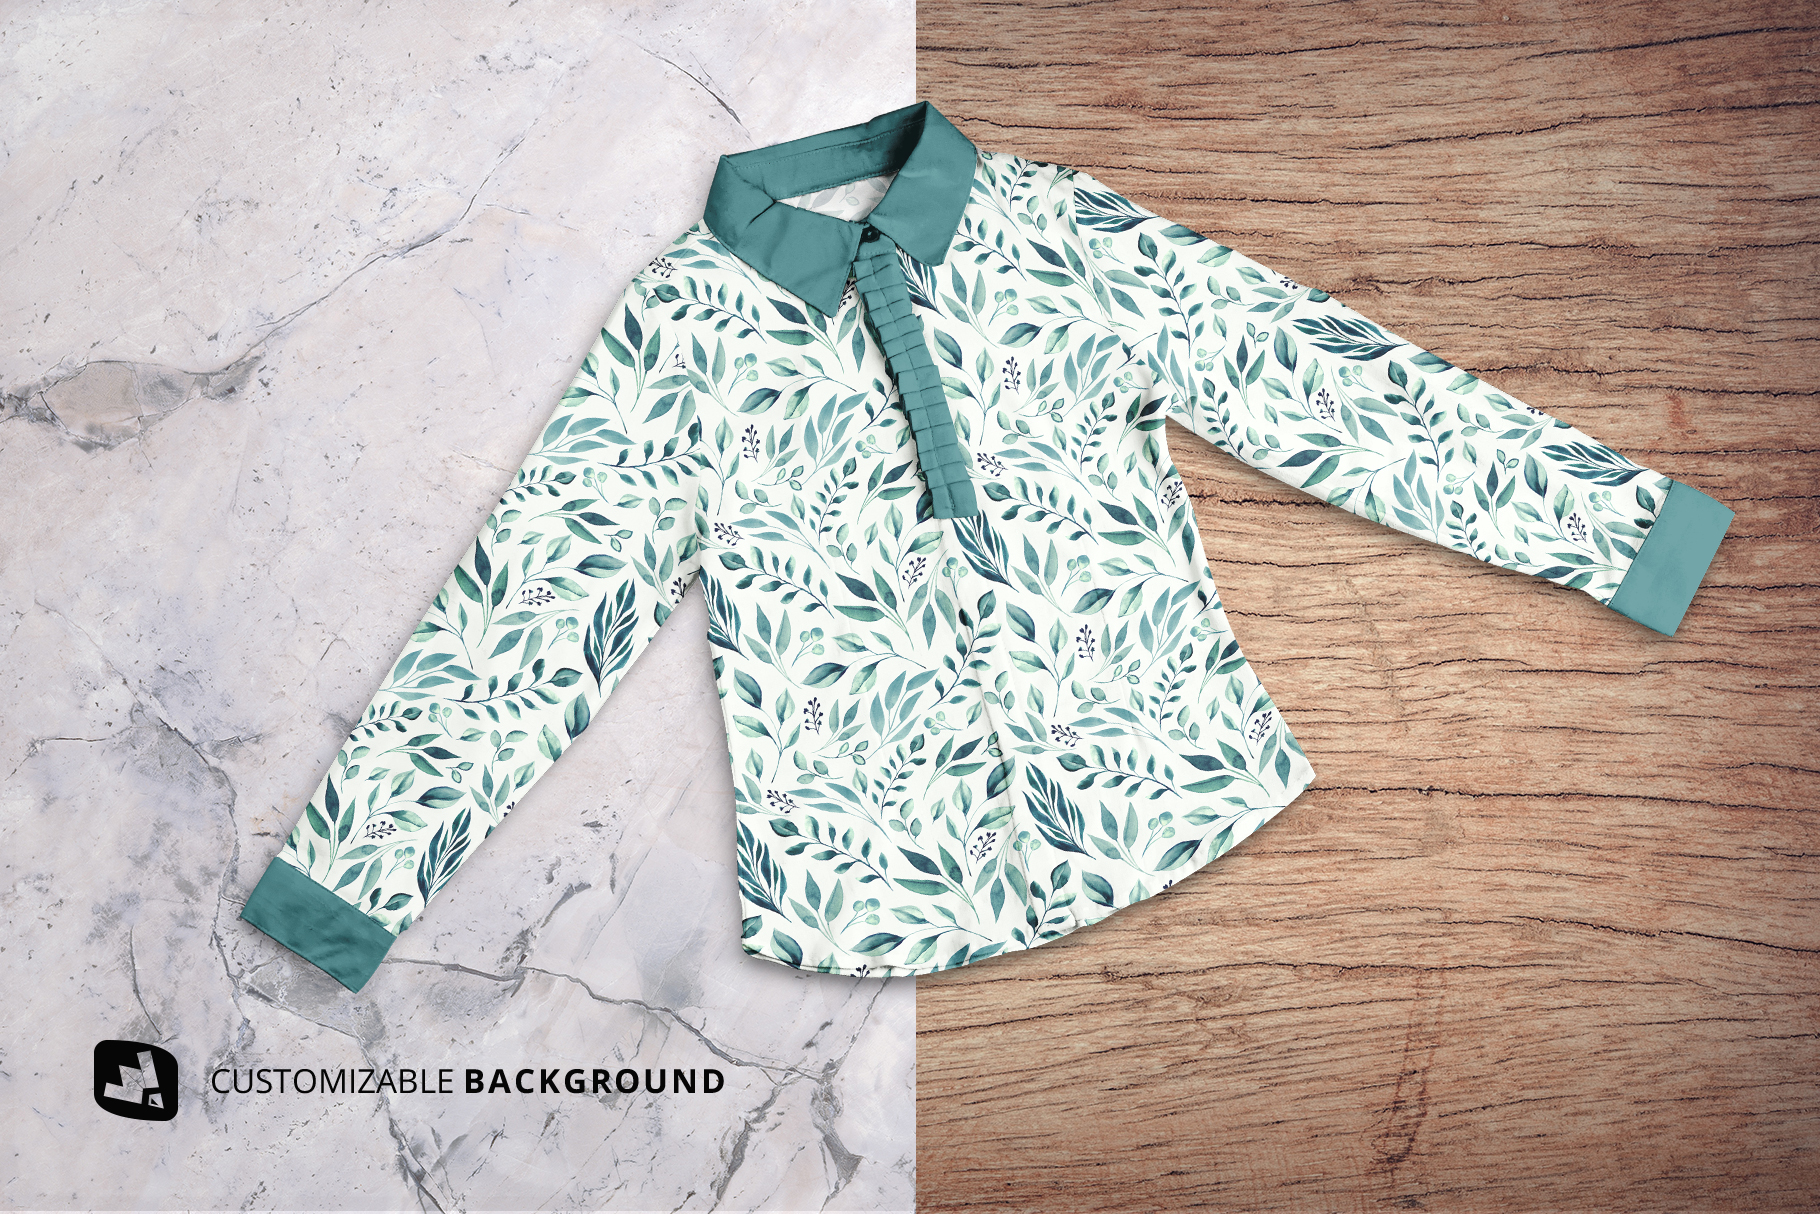 background options of the women's full sleeve blouse mockup